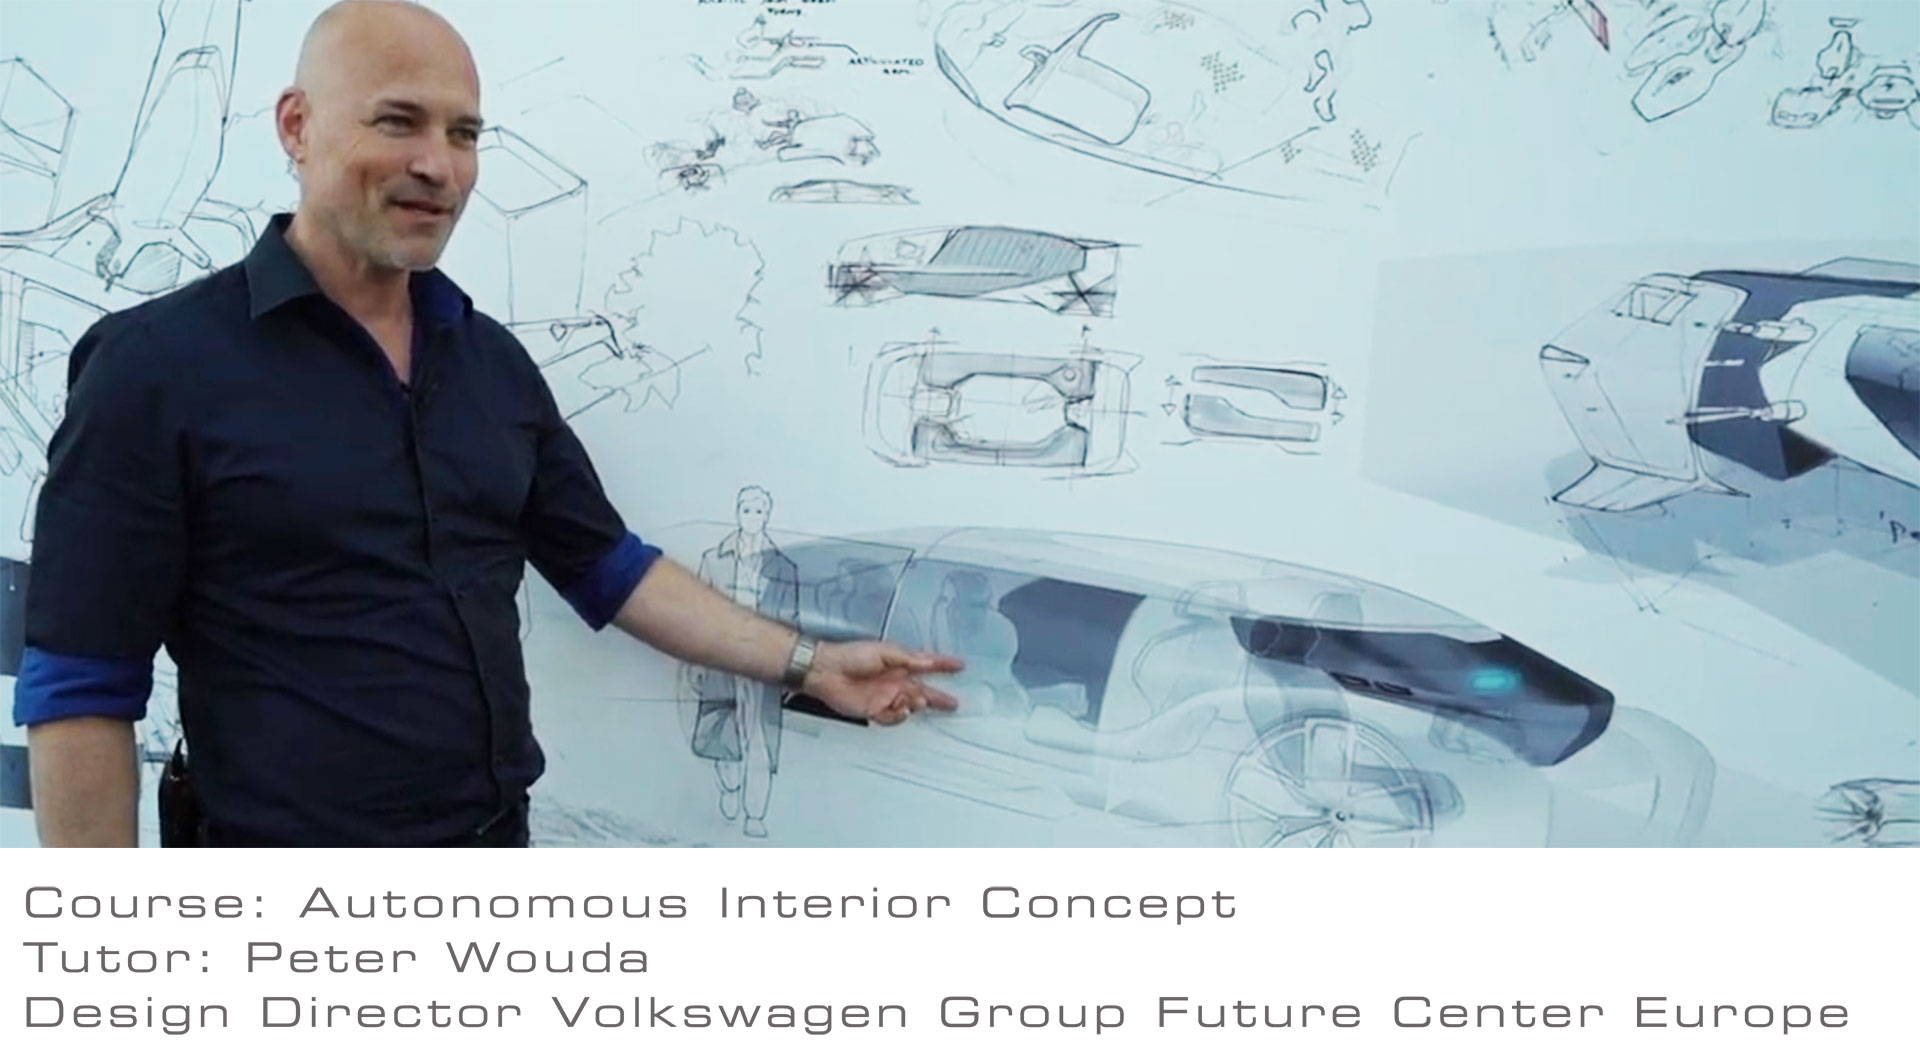 The Car Design Process: Learn to Find Your Own Way - Car Body Design